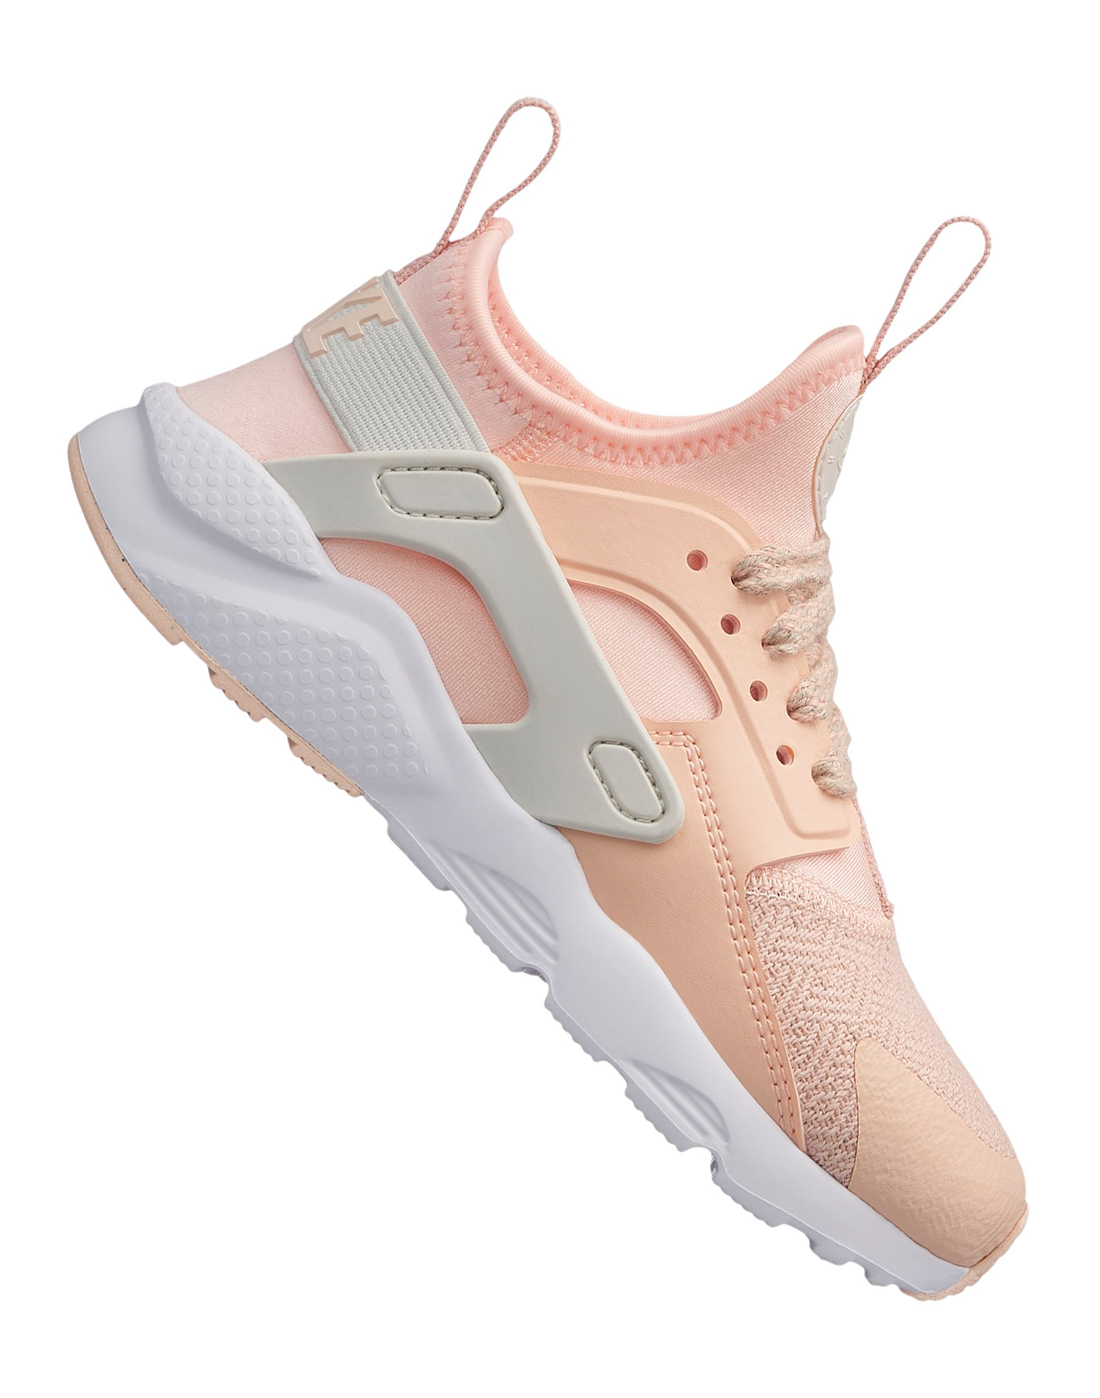 066e16e7ee8 Nike Younger Girls Huarache Run Ultra